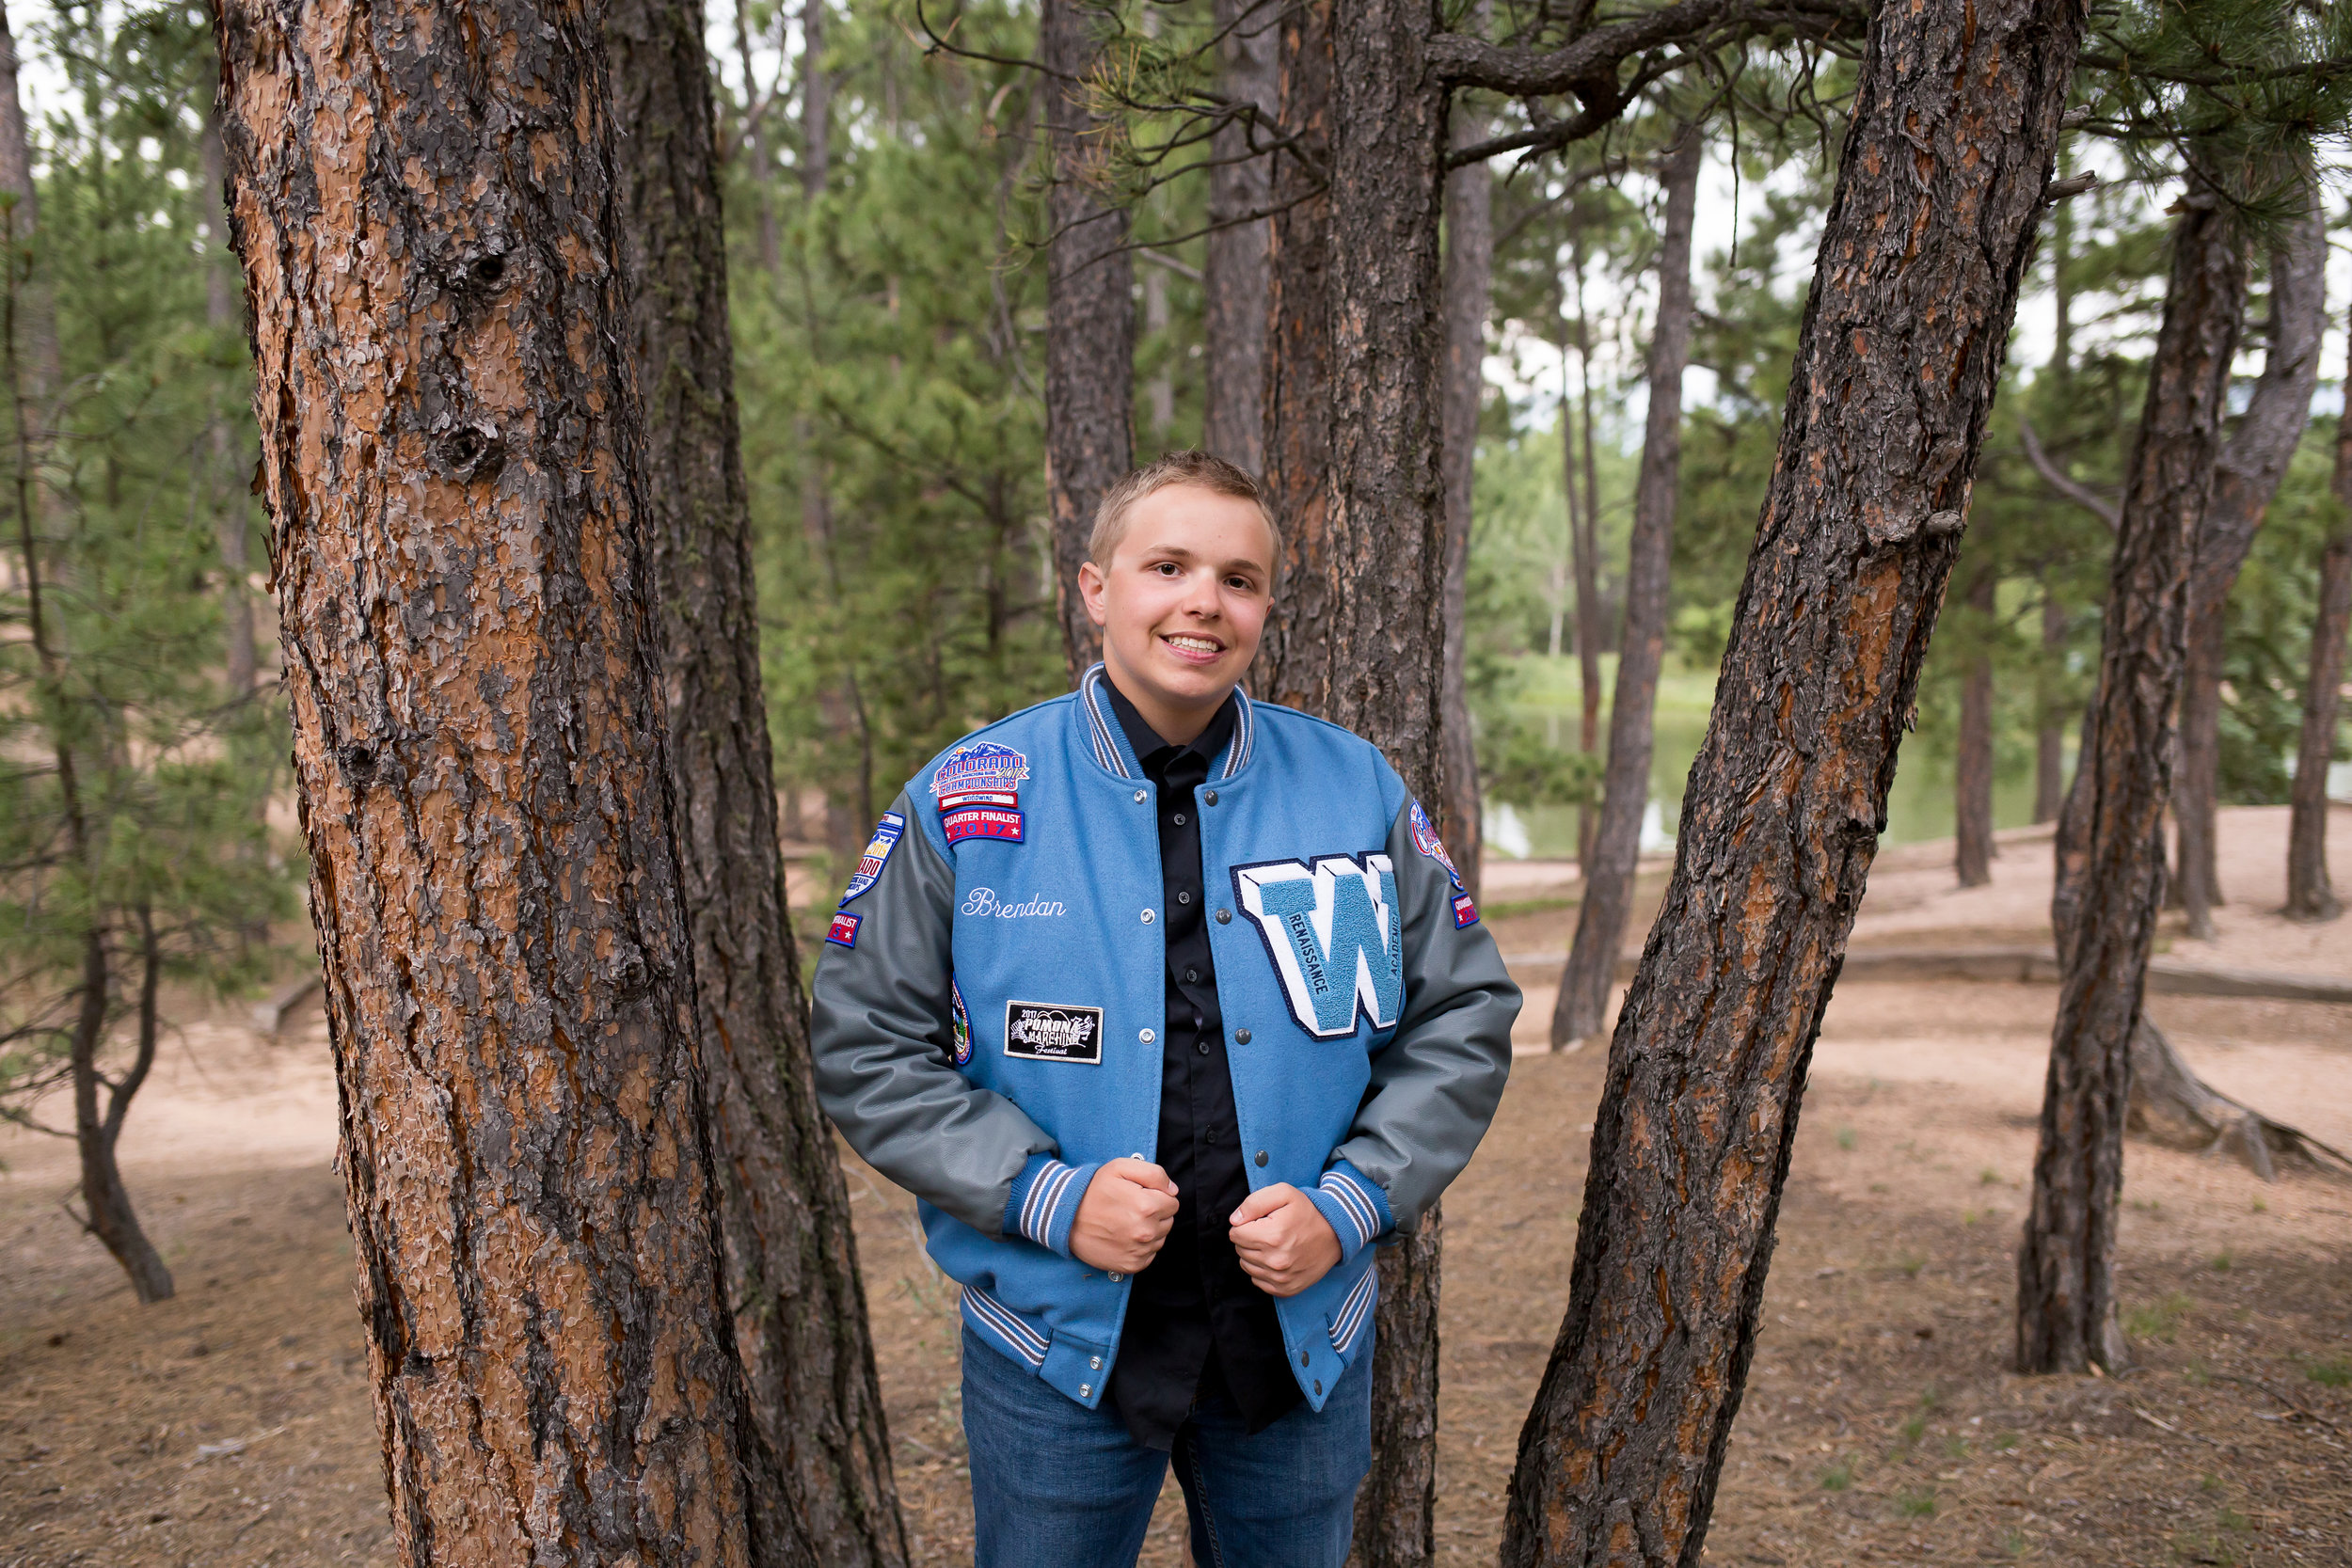 Colorado Springs Senior Photography | Stacy Carosa Photography | Colorado Springs senior photographer | senior session at Fox Run Park | Widefield high school senior among pine trees varsity jacket